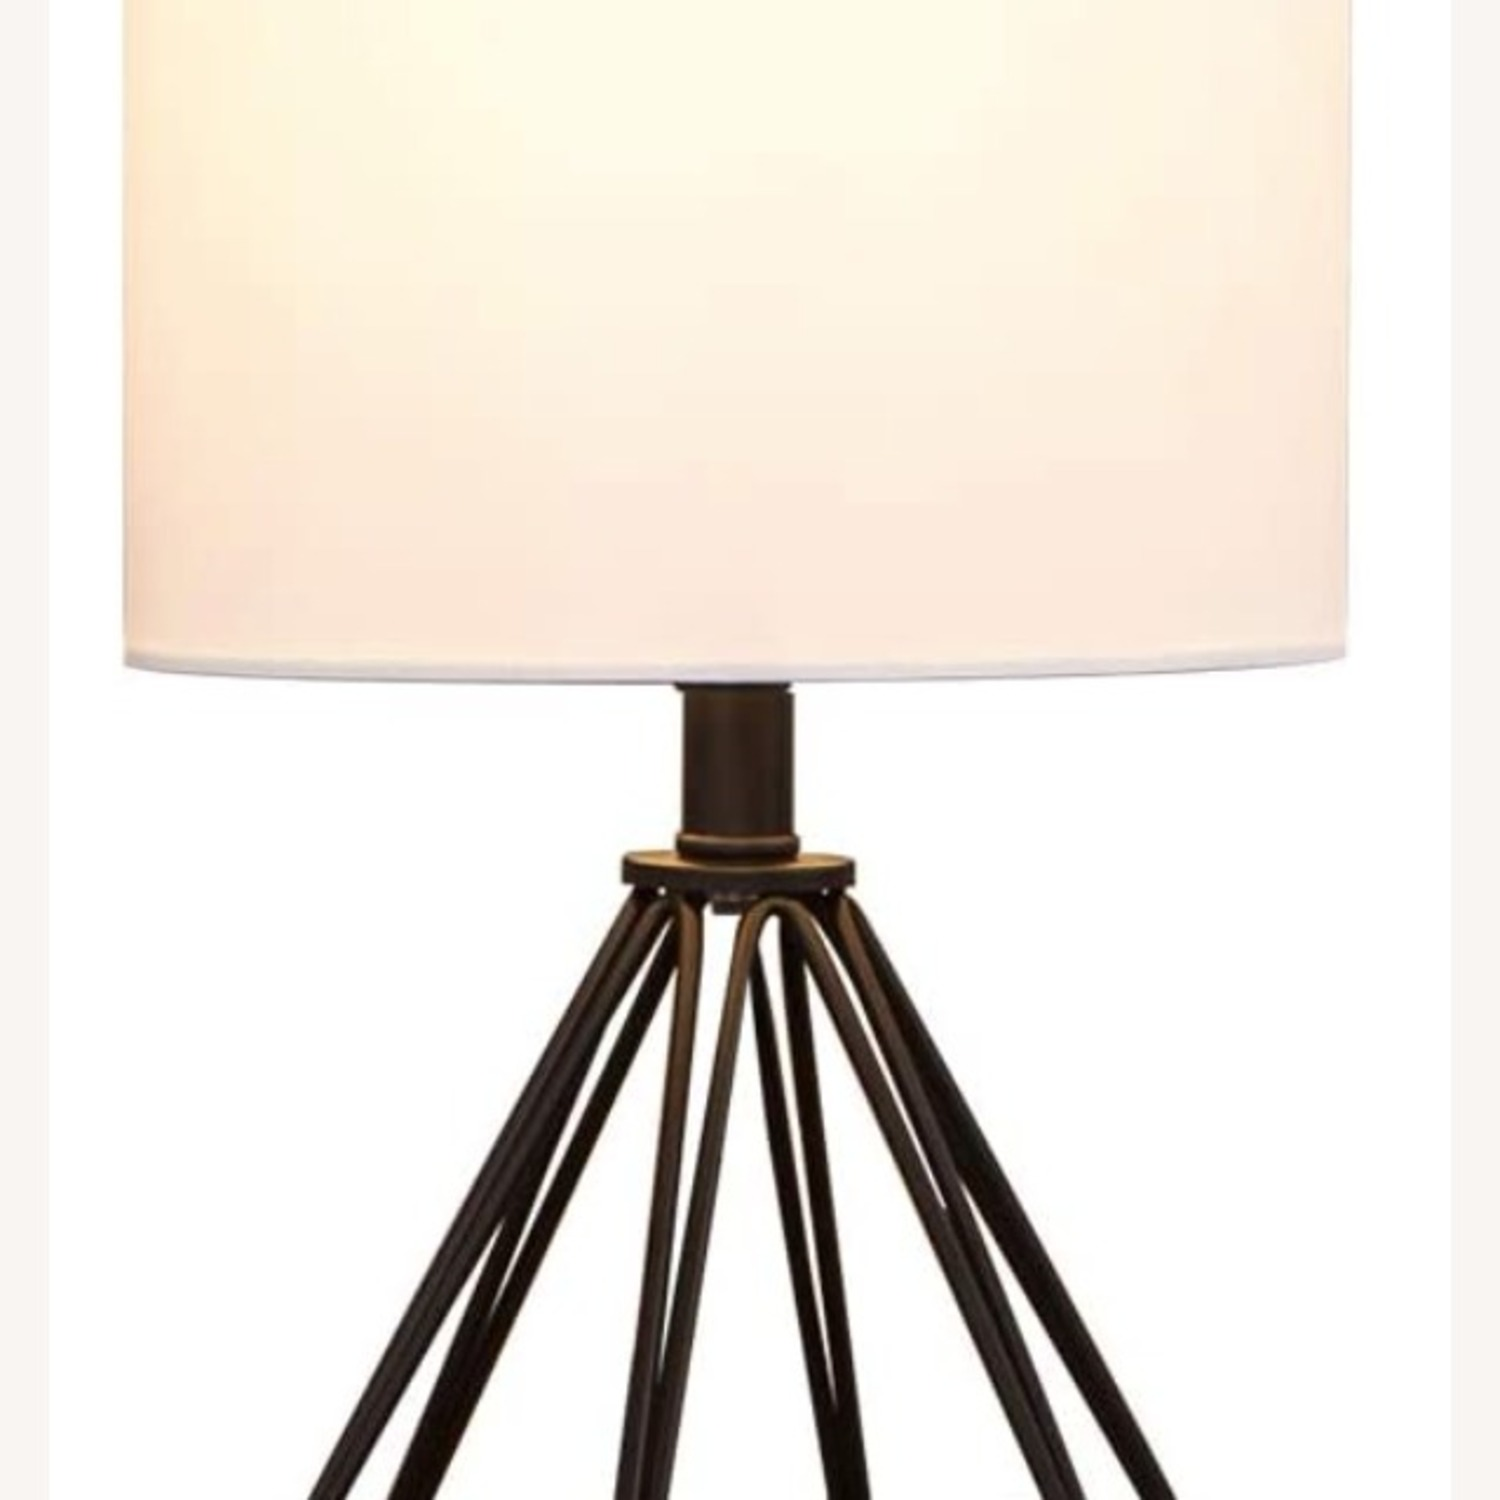 Modern Chic Desk Table Lamp with Black Metal Base - image-2